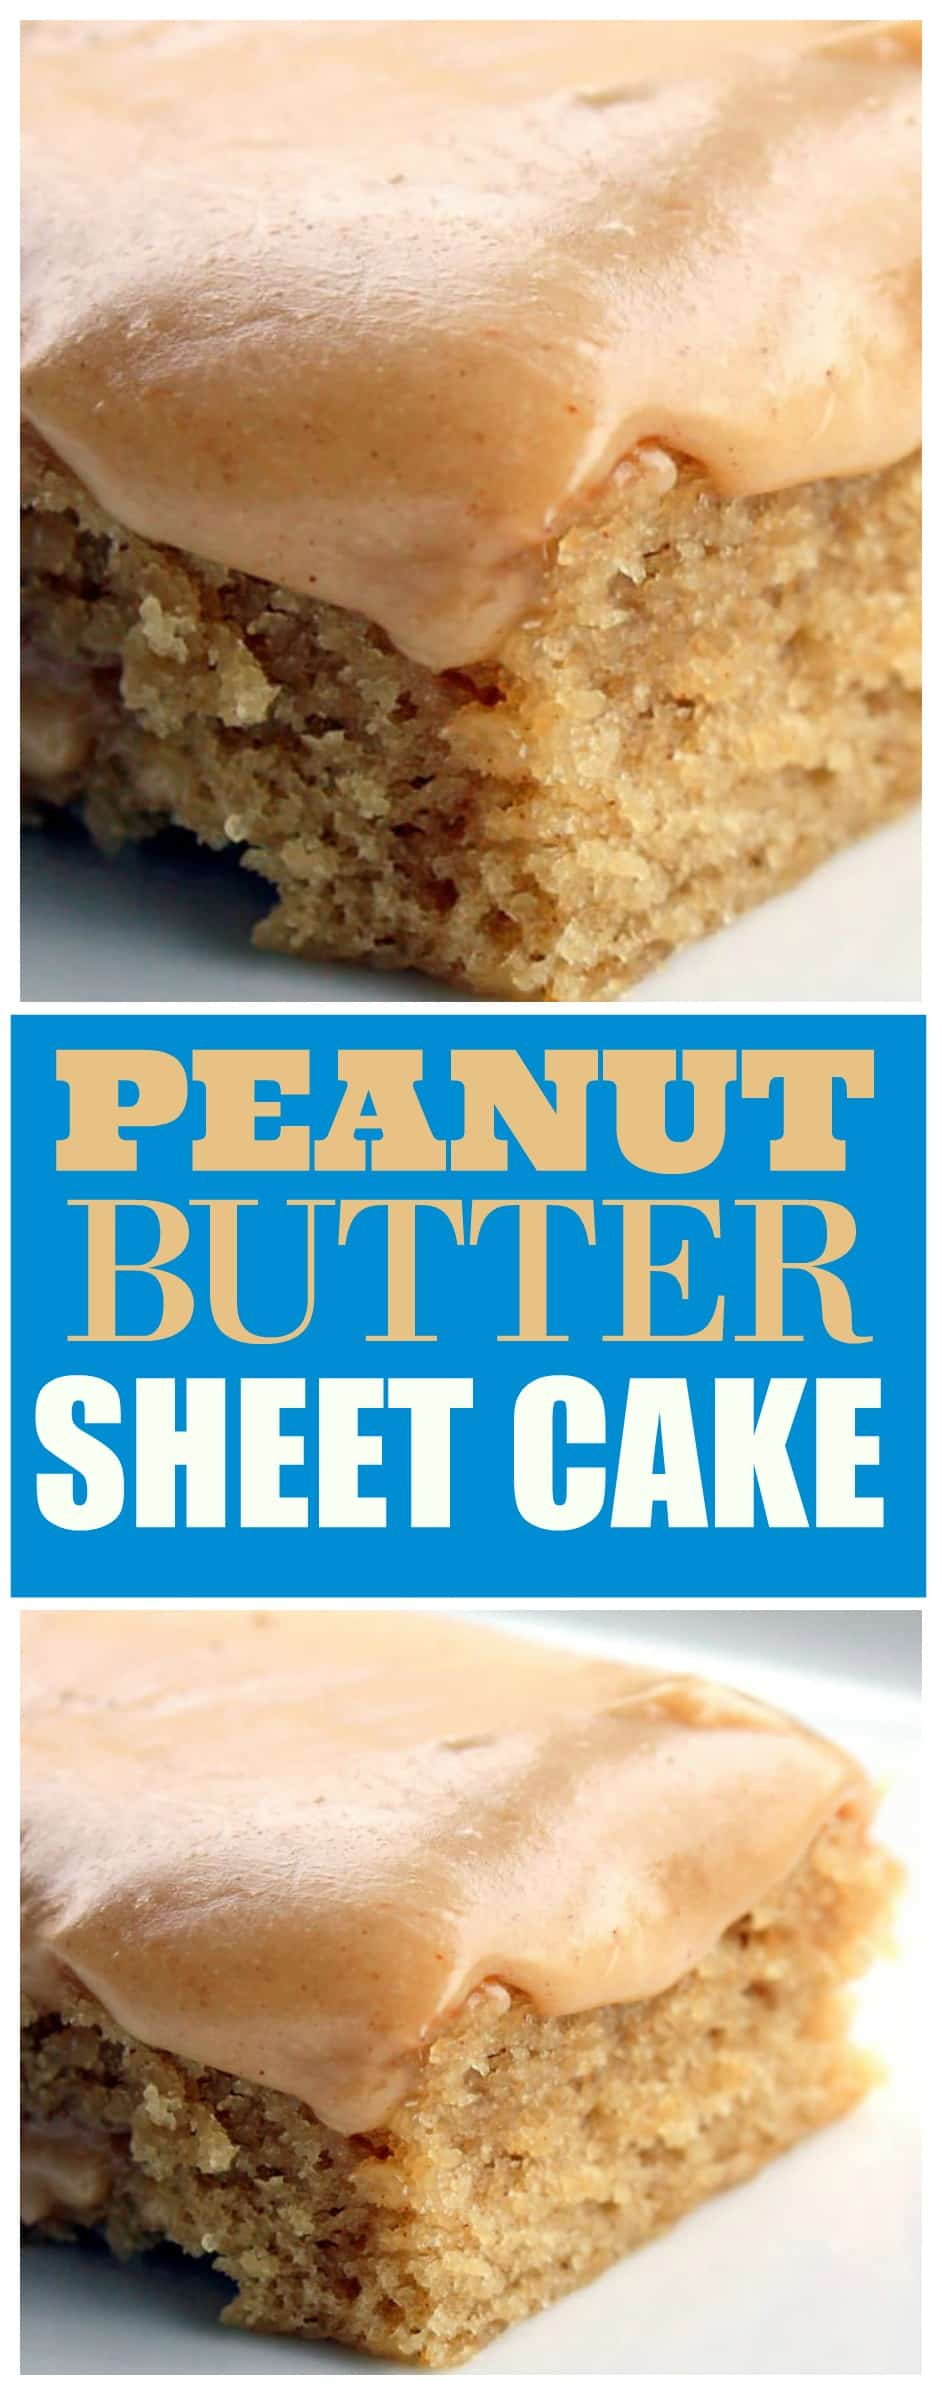 This Peanut Butter Sheet Cake is a moist sheet cake topped with a gooey peanut butter glaze. Peanut butter lovers, this is your dessert! #peanut #butter #cake #recipe #sheet